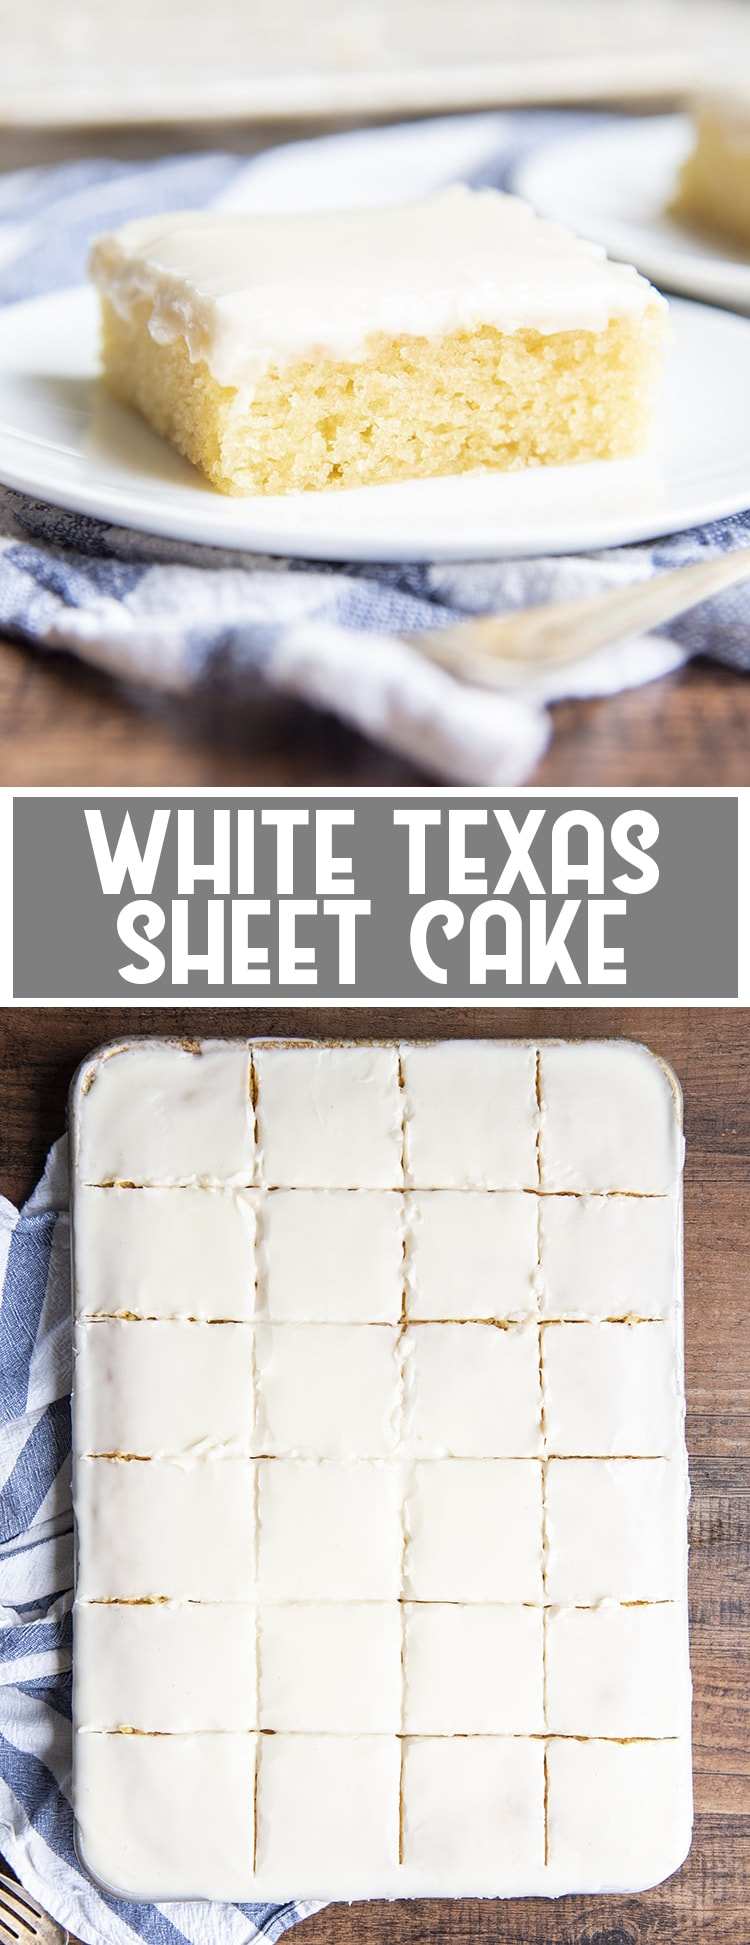 White Sheet Cake with vanilla icing on a plate with text overlay saying white texas sheet cake for pinterest